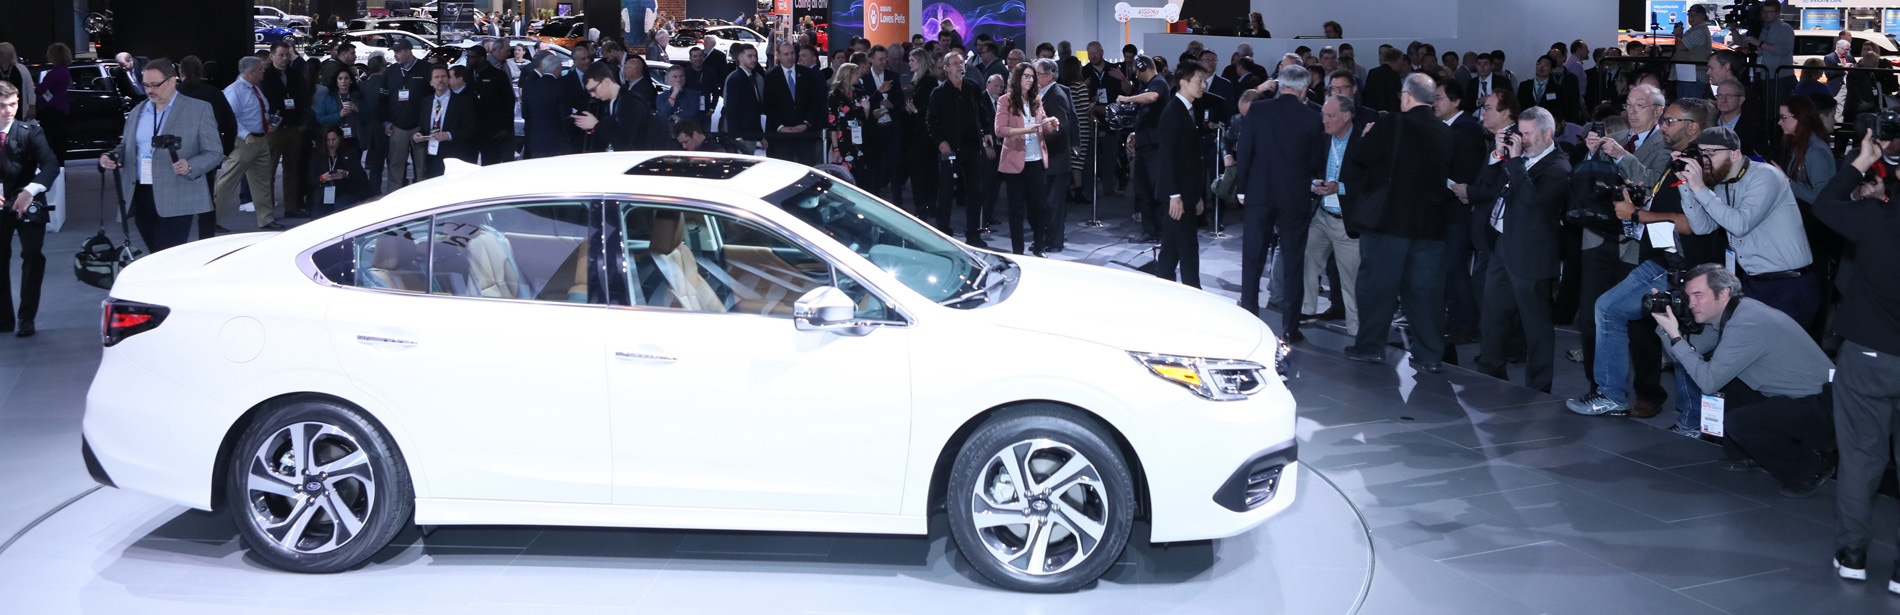 A white 2020 Subaru Legacy surrounded by a crowd and photographers.